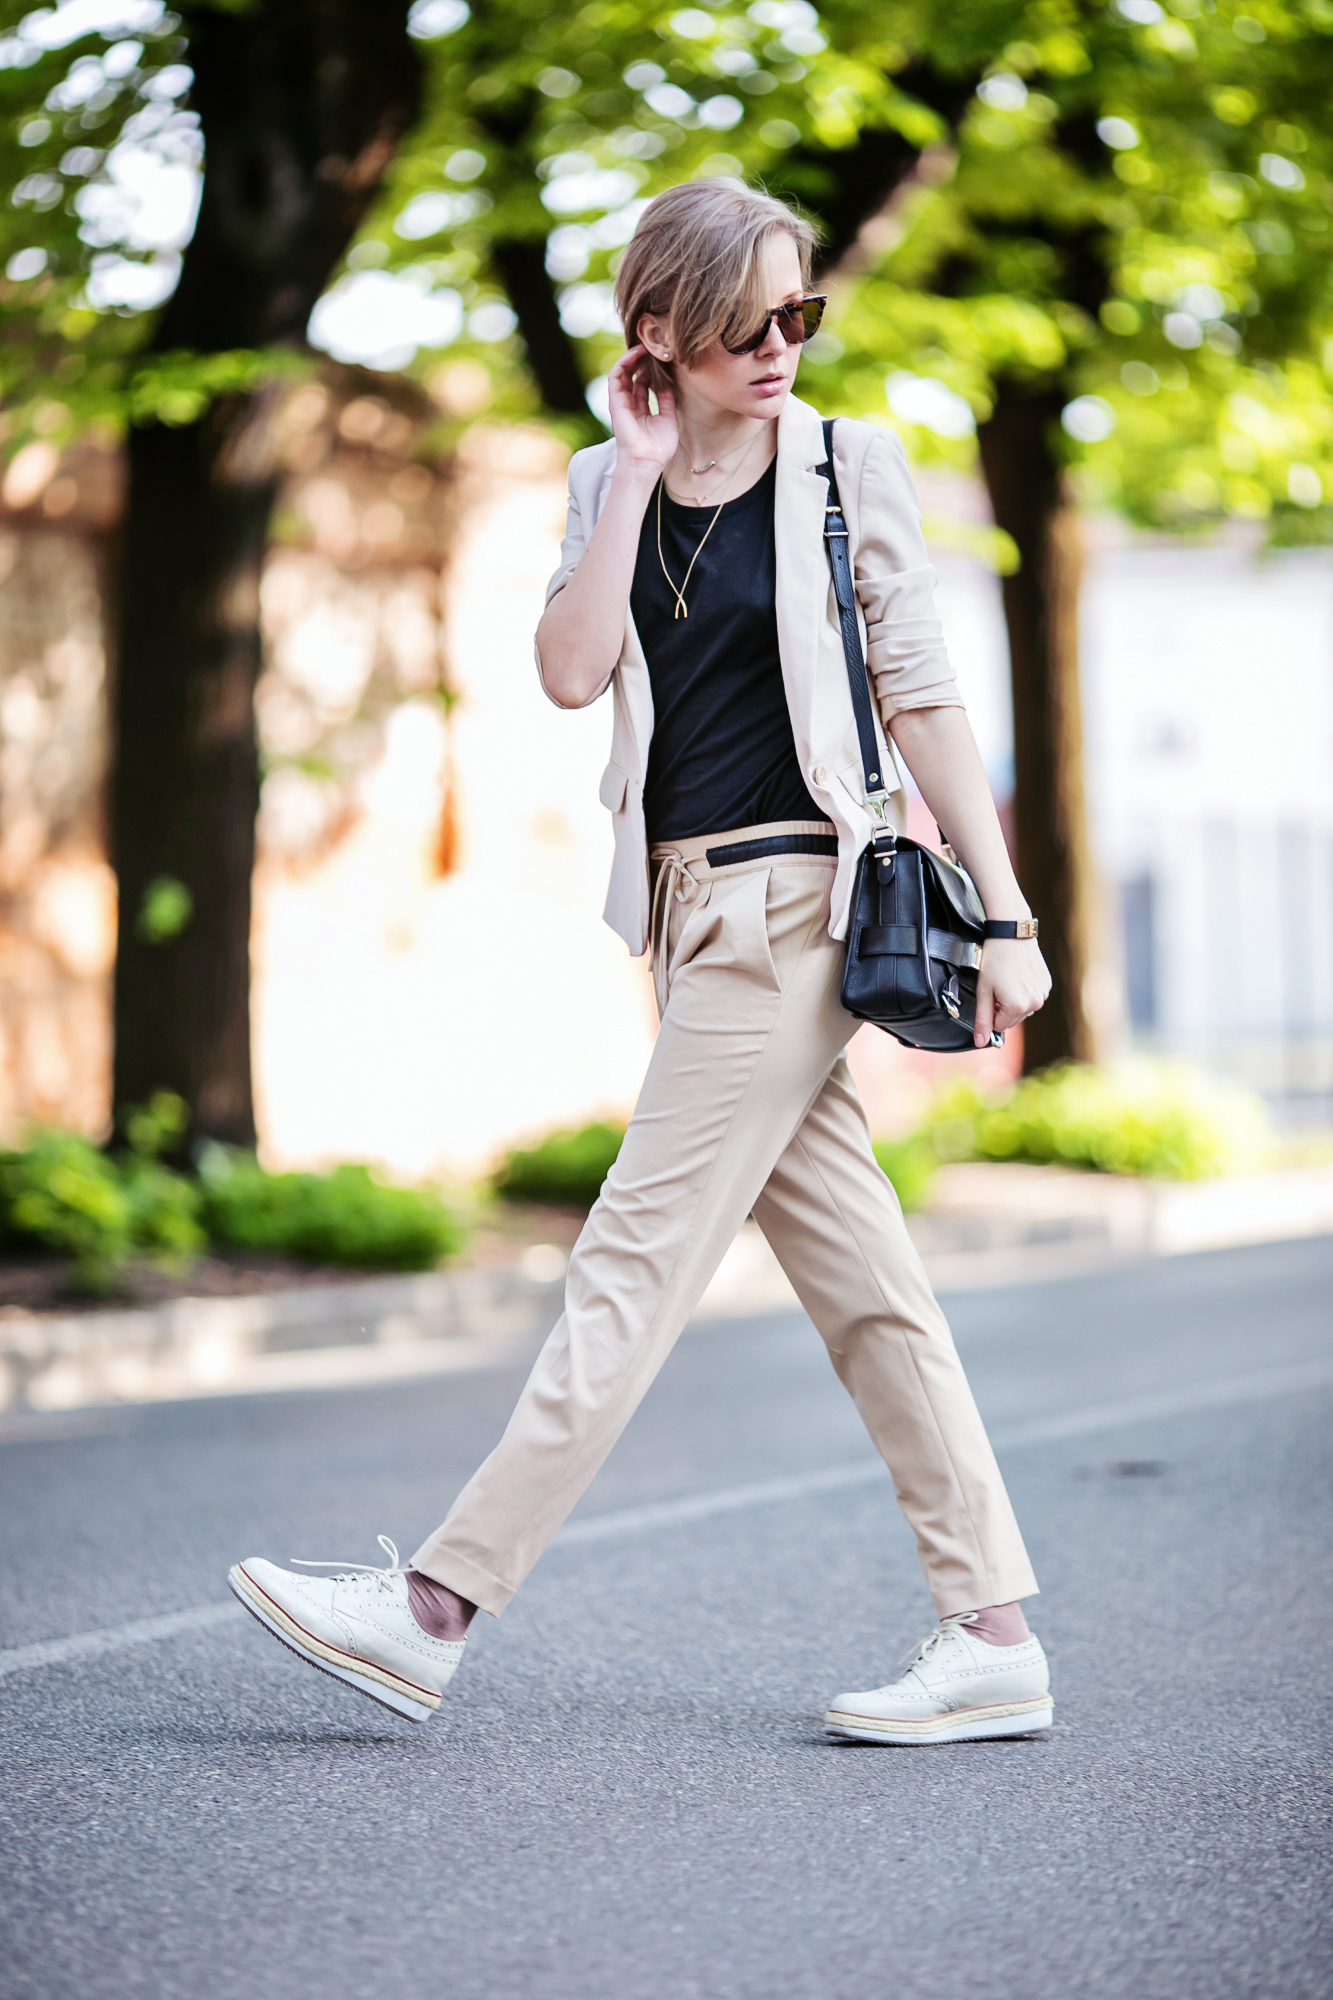 darya kamalova from thecablook com on 1000 chitarre in piazza event in Brescia showing hot to wear a beige suit with pollini brogues and proenza schouler ps11 bag-61 copy